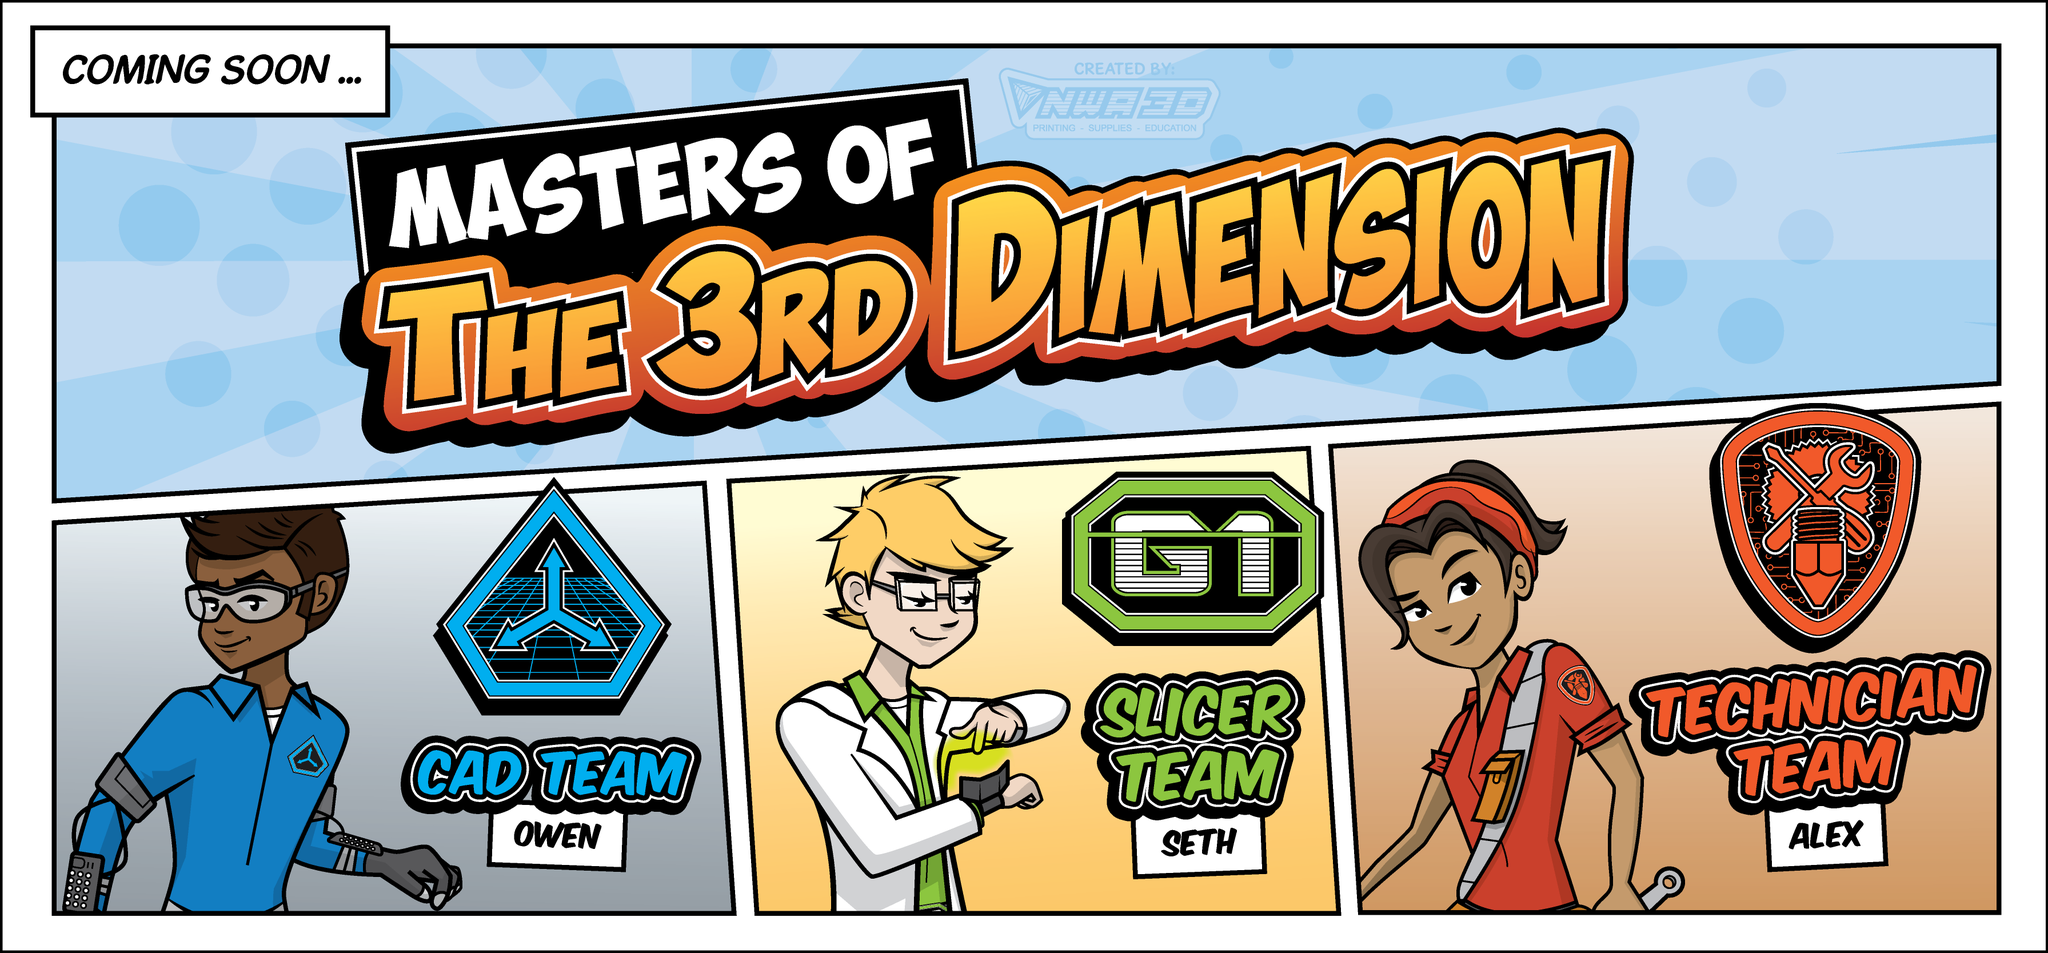 Coming Soon: Masters of the 3rd Dimension